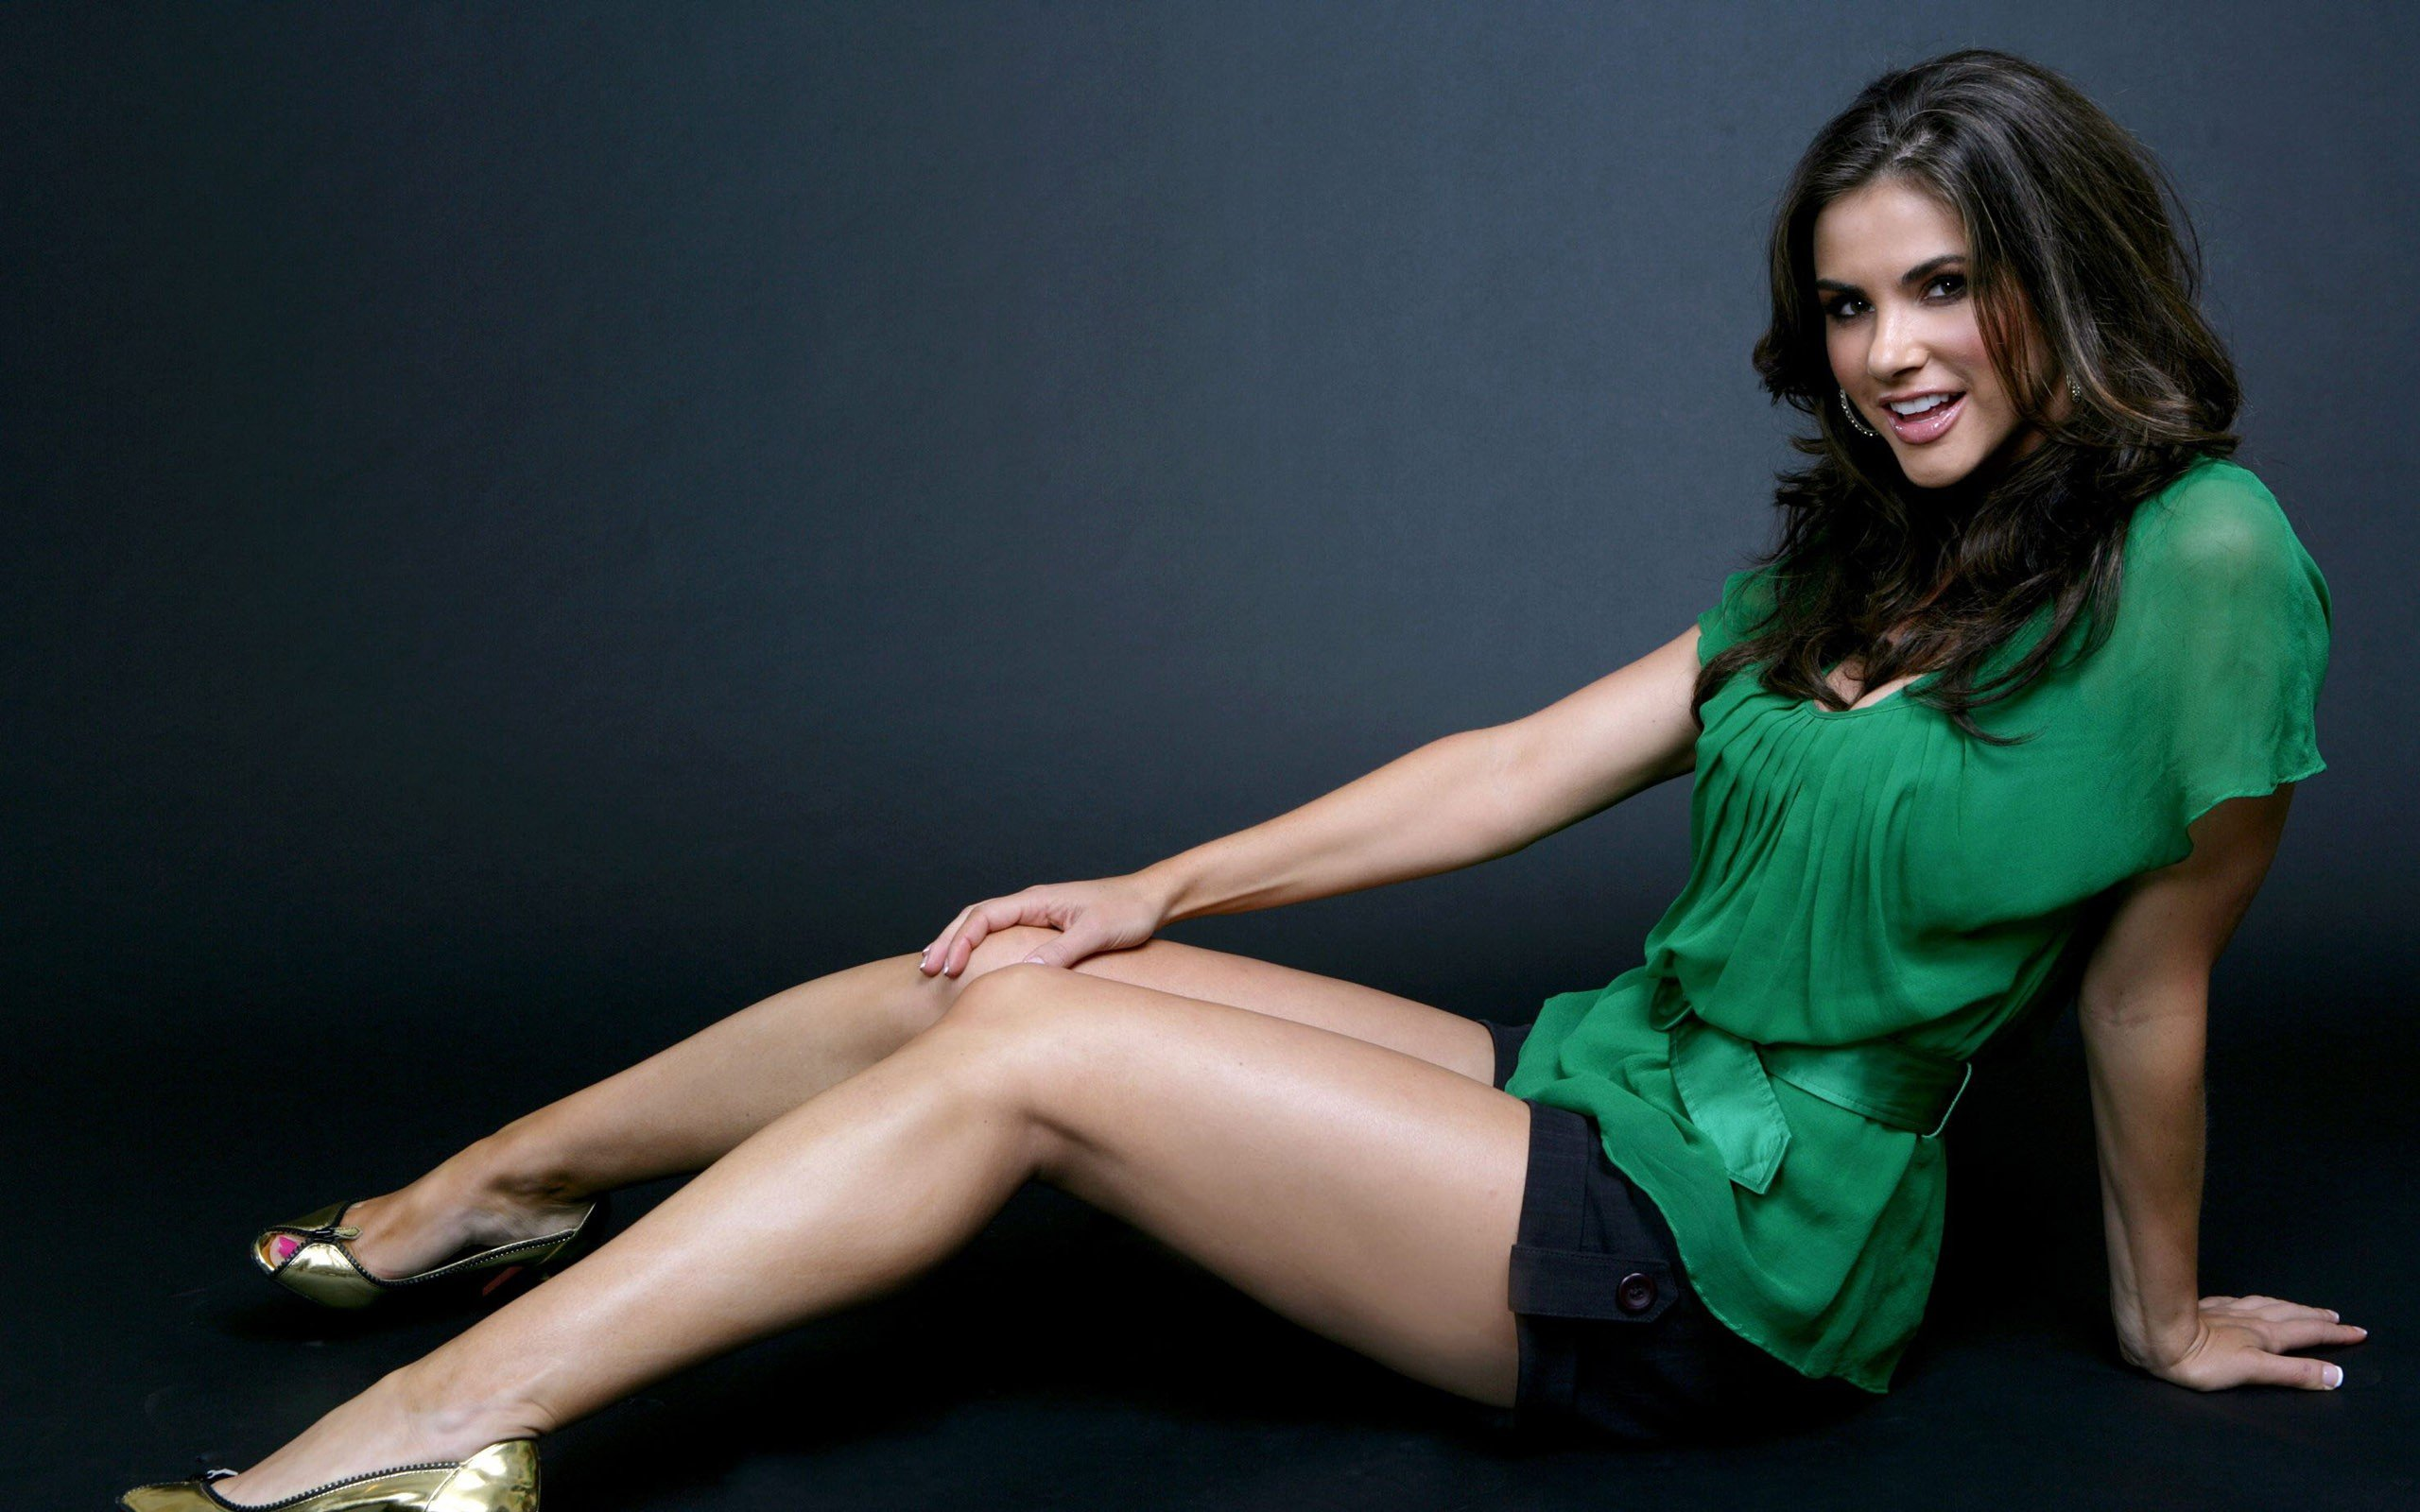 Brunettes Legs Wallpaper 2560x1600 Brunettes Legs Green Women Blue 2560x1600